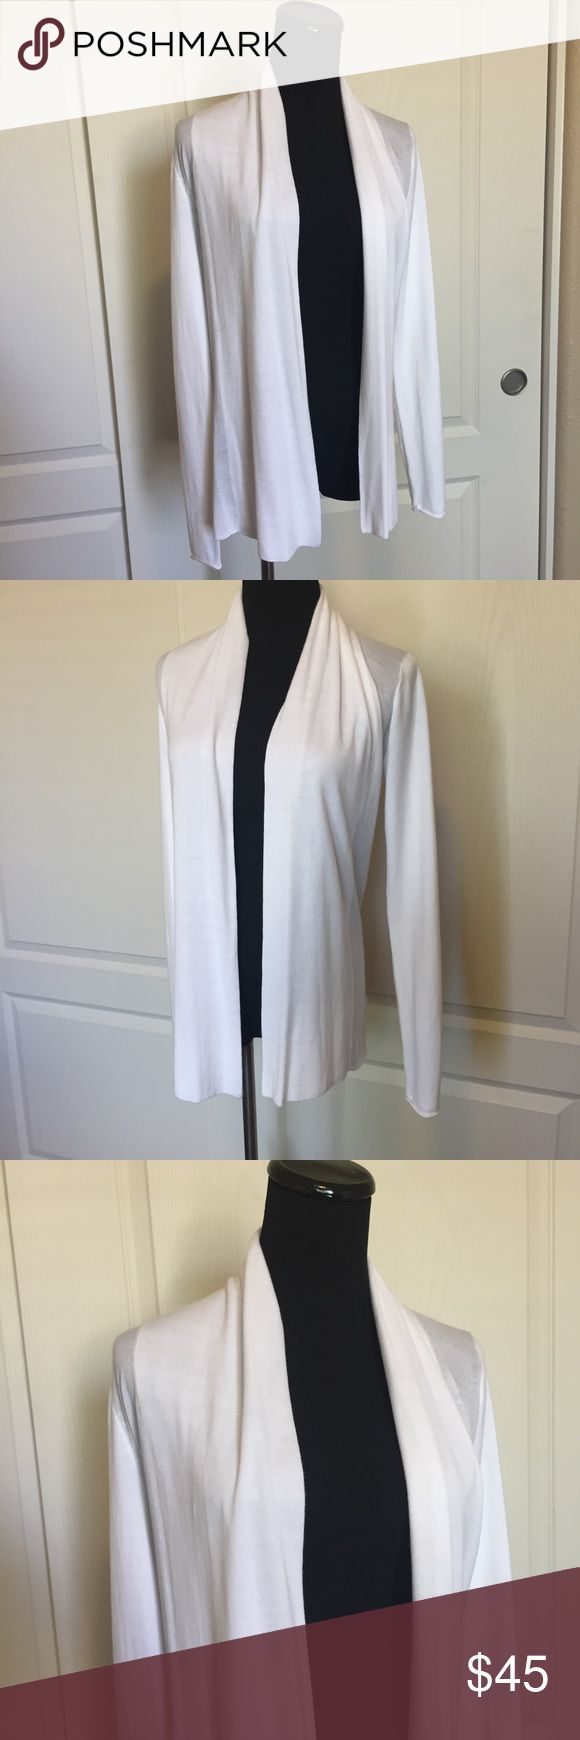 "Express Soft Ivory Open Front Cardigan Sweater XS Express open front cardigan sweater in Soft Ivory. Size XS. Excellent condition. Worn once. No flaws. The material is soft, lightweight and stretchy. Long sleeves. A light, easy-wear layer of deliciously soft knit to complement your ensemble. Contrast its drapey shape by tossing it on over denim leggings and a fitted tee or cami. Body: 100% rayon. Sleeves: 80% rayon 17% nylon 3% spandex. Approx 27"" long. Smoke-free home. No trades. Offers…"